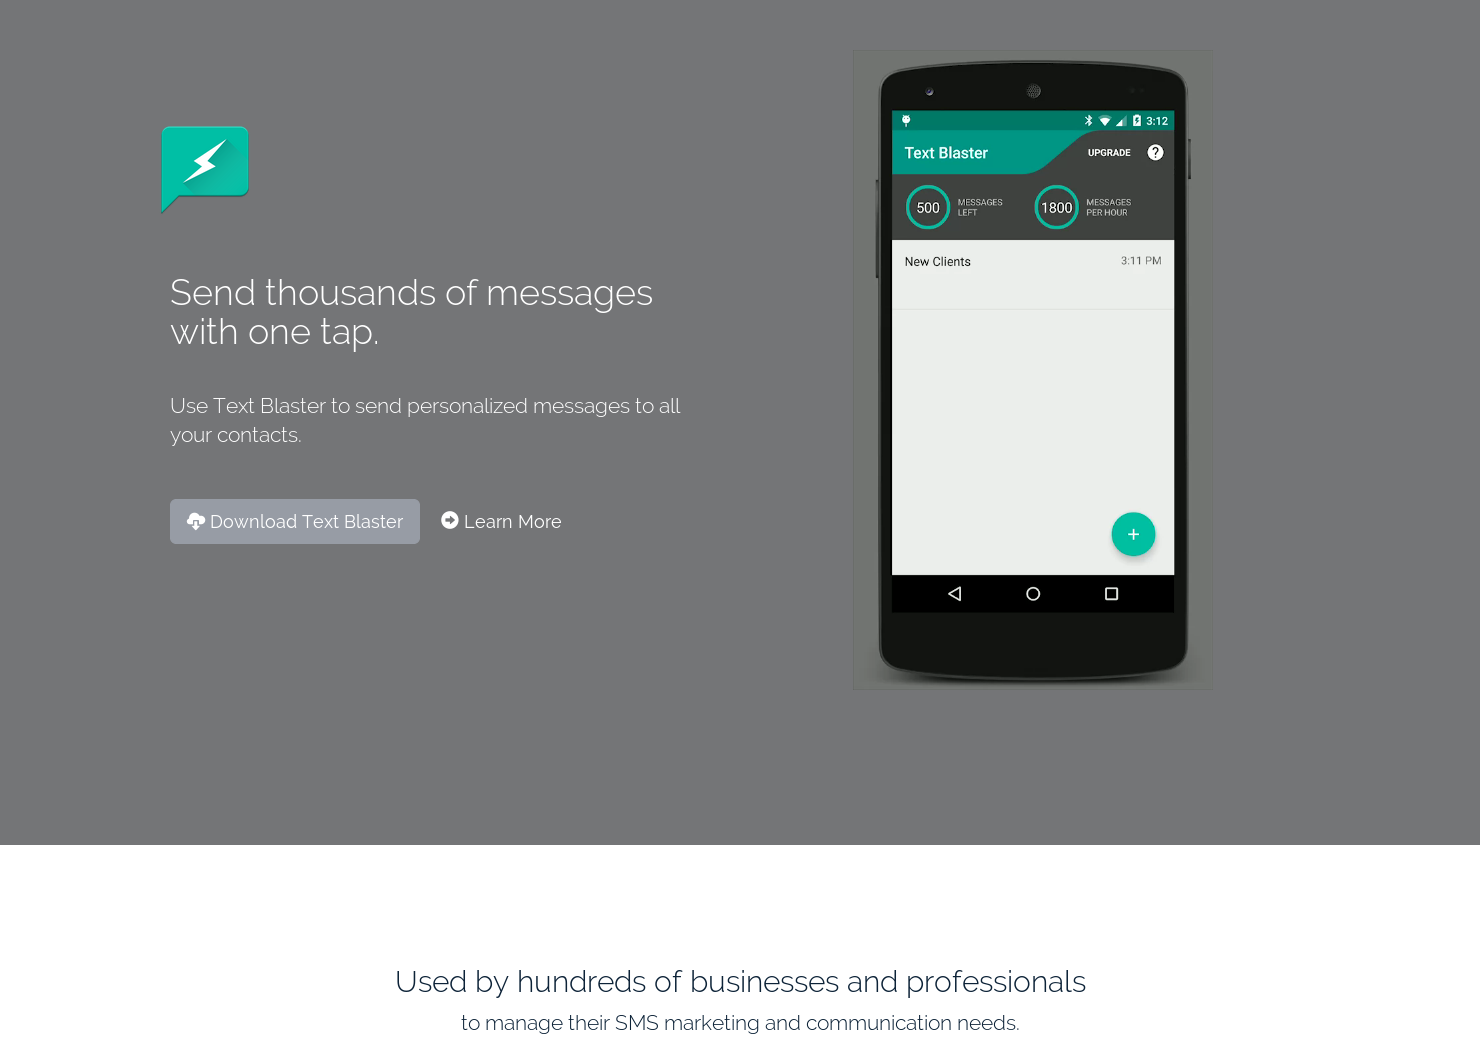 Text Blaster - Send thousands of text messages with one tap